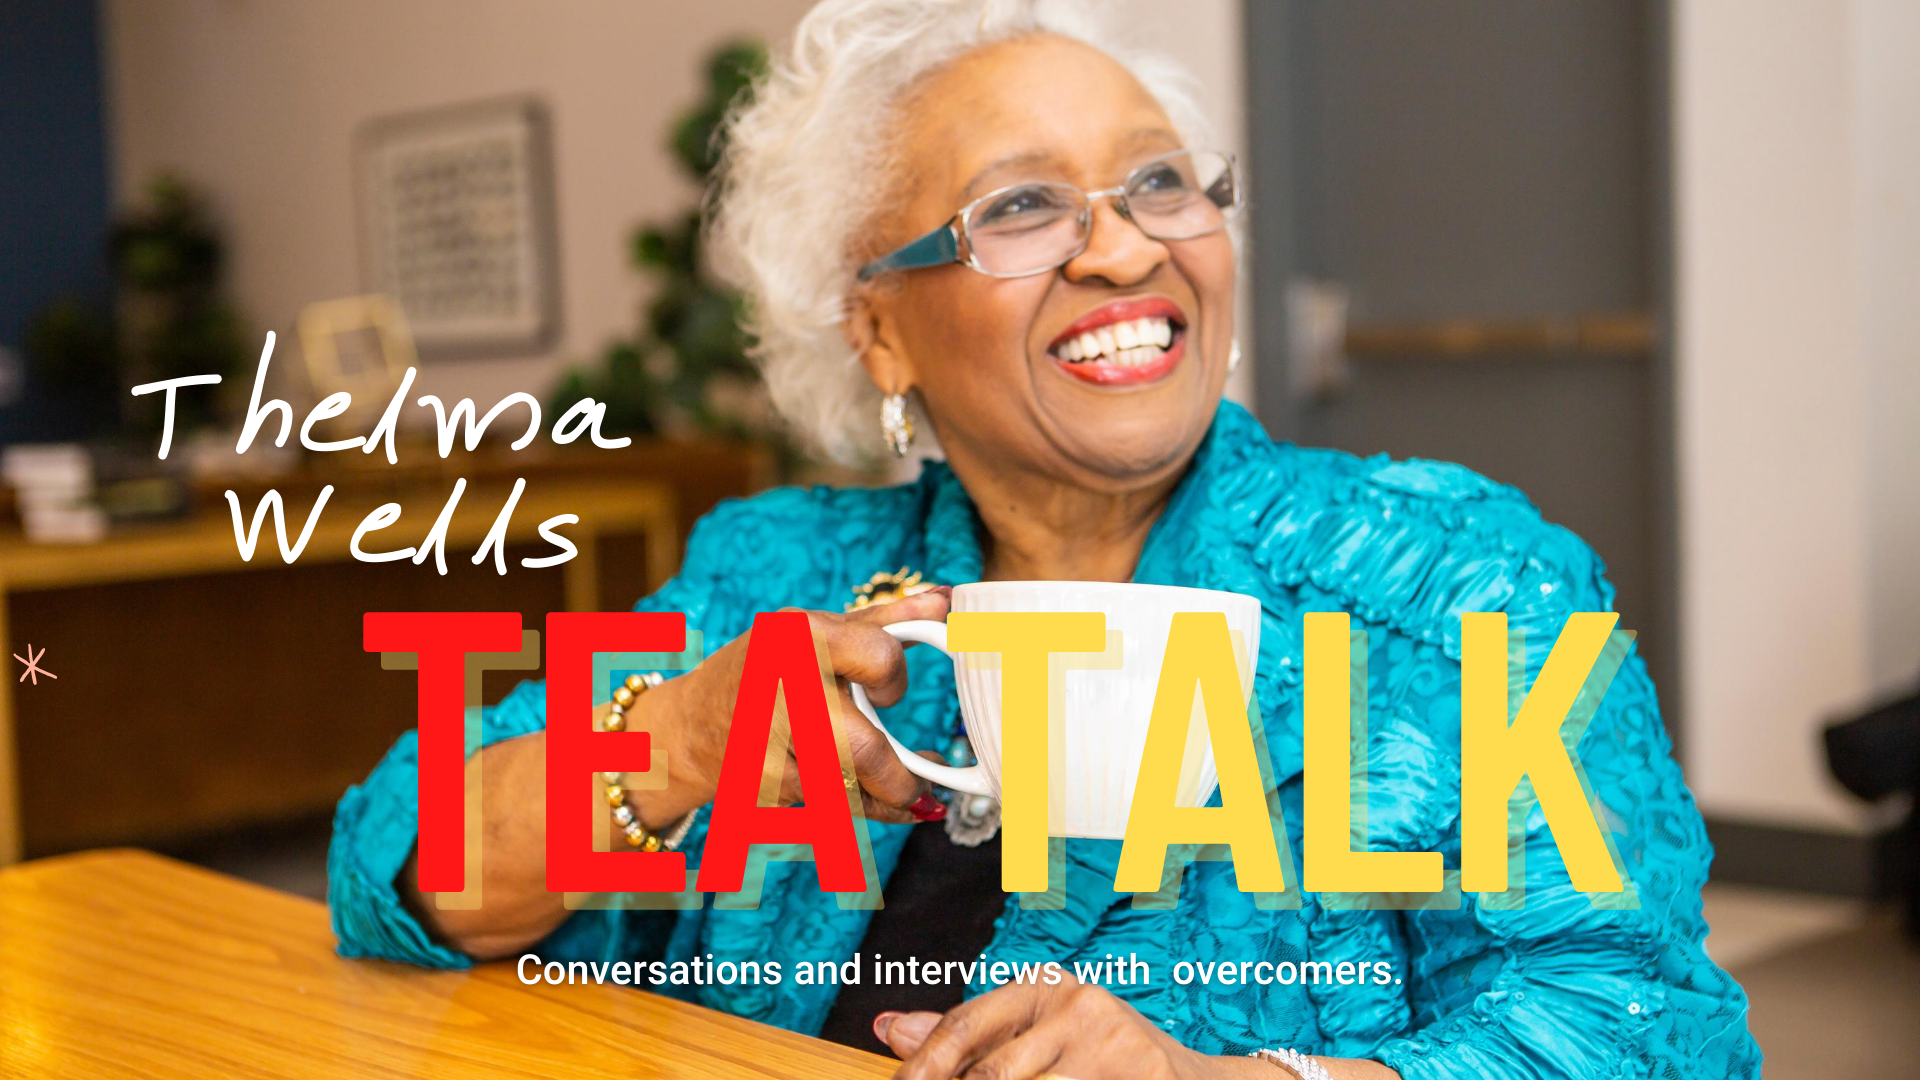 Thelma Wells Tea Talk